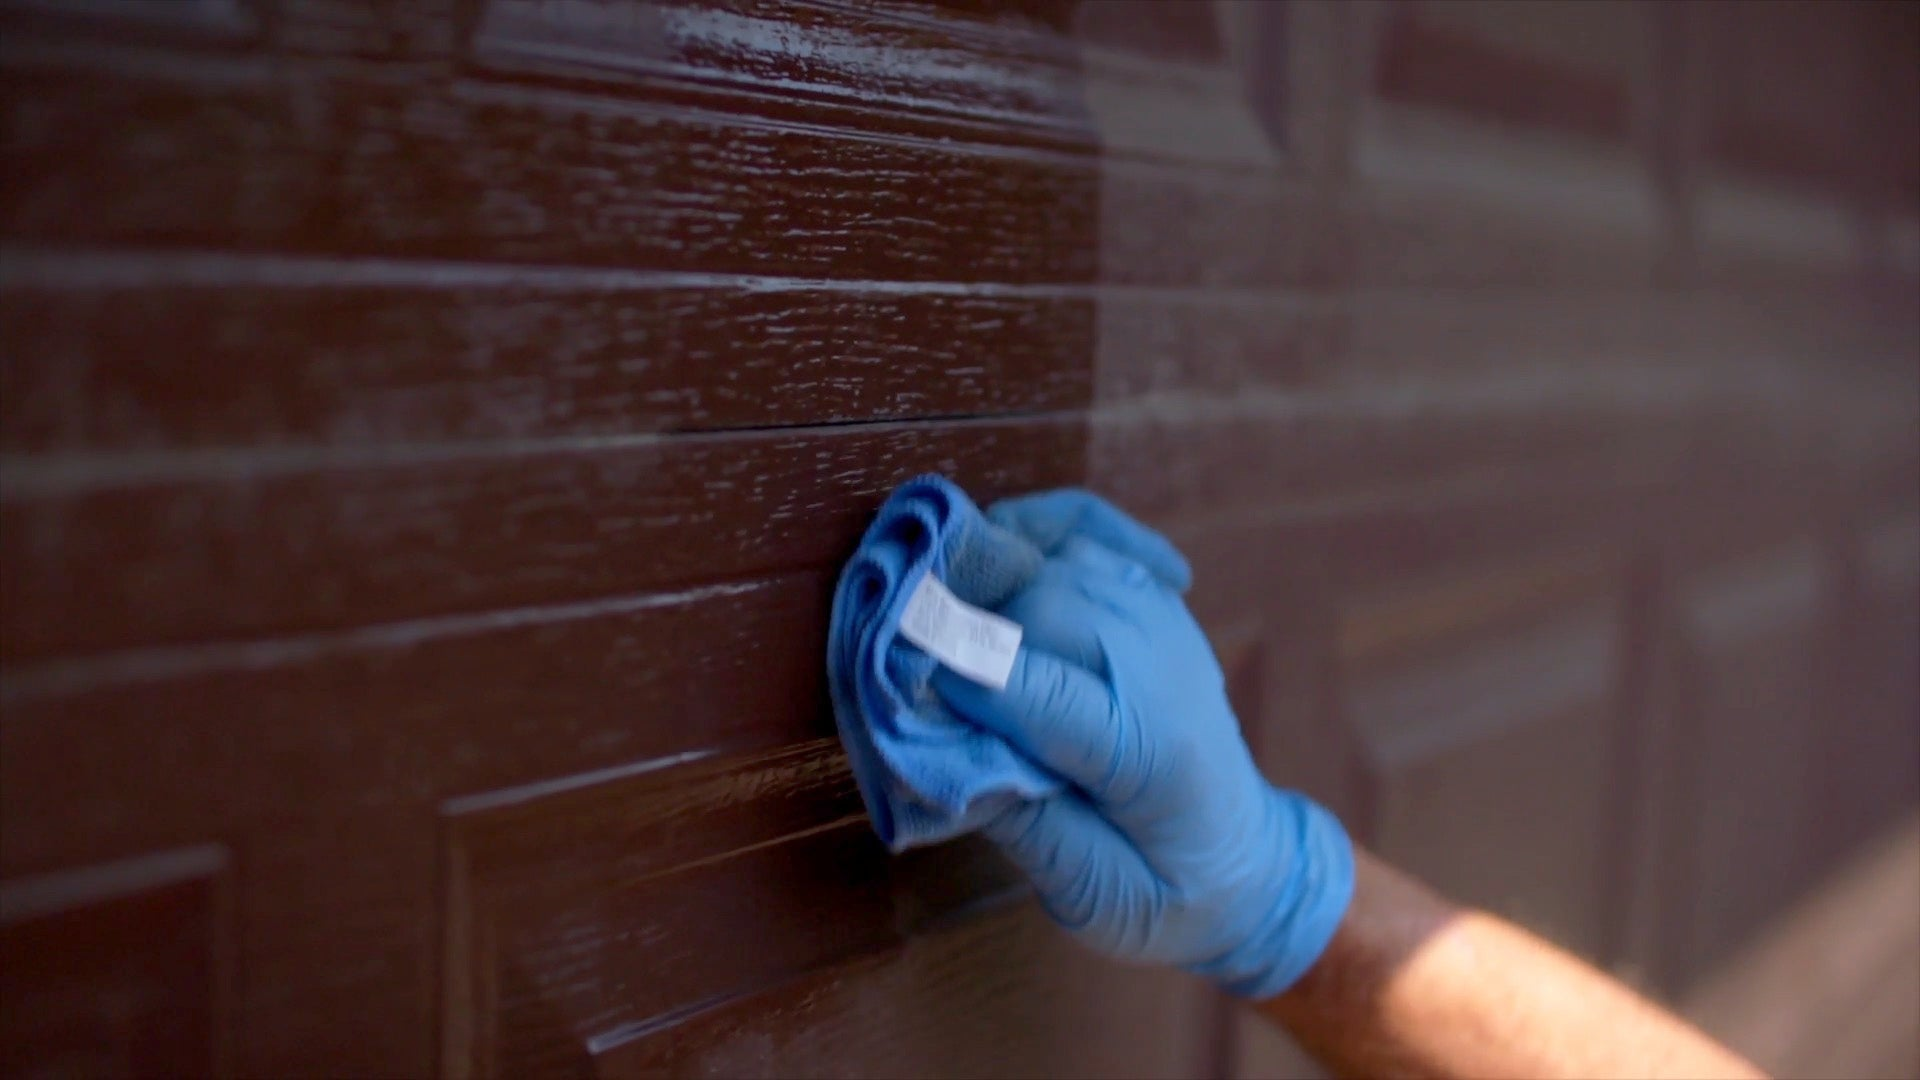 AL-NEW is the best aluminum restoration solution to remove oxidation from your garage doors.